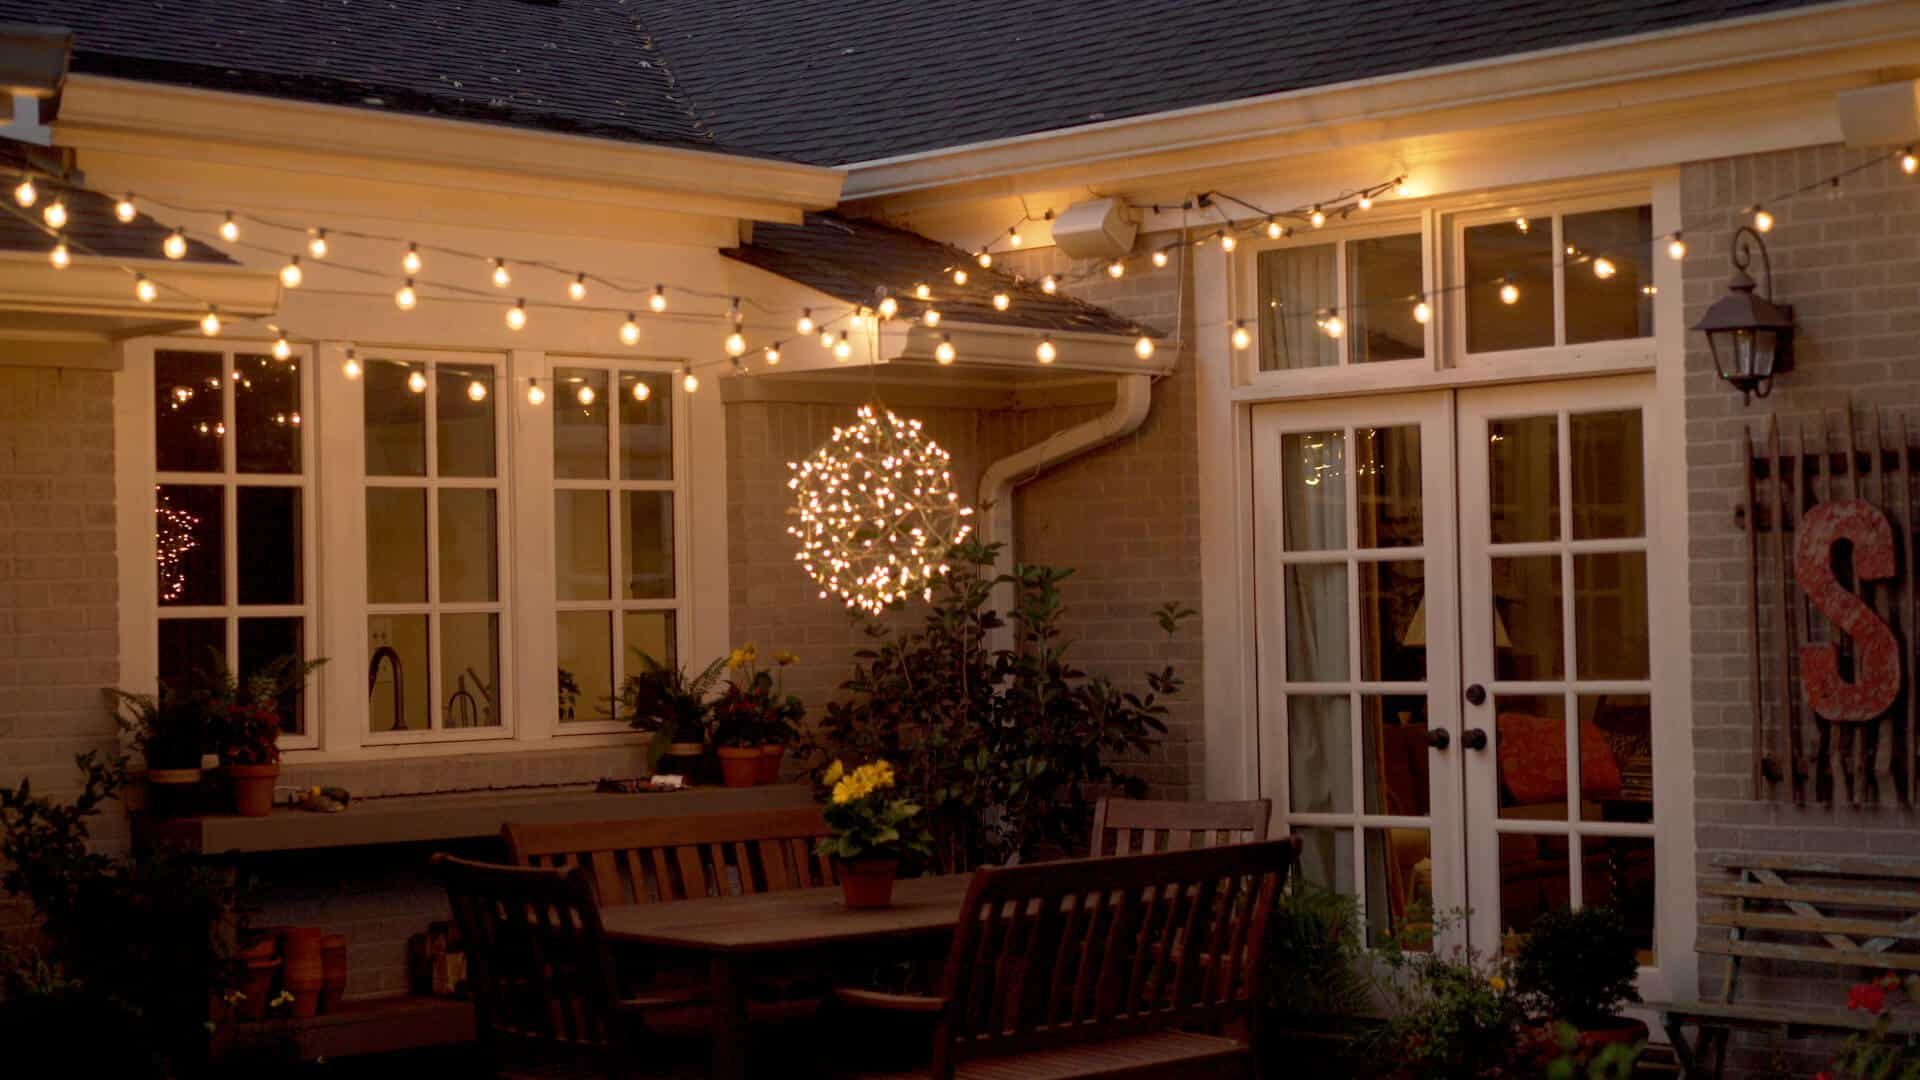 Hang String Lights in your yard